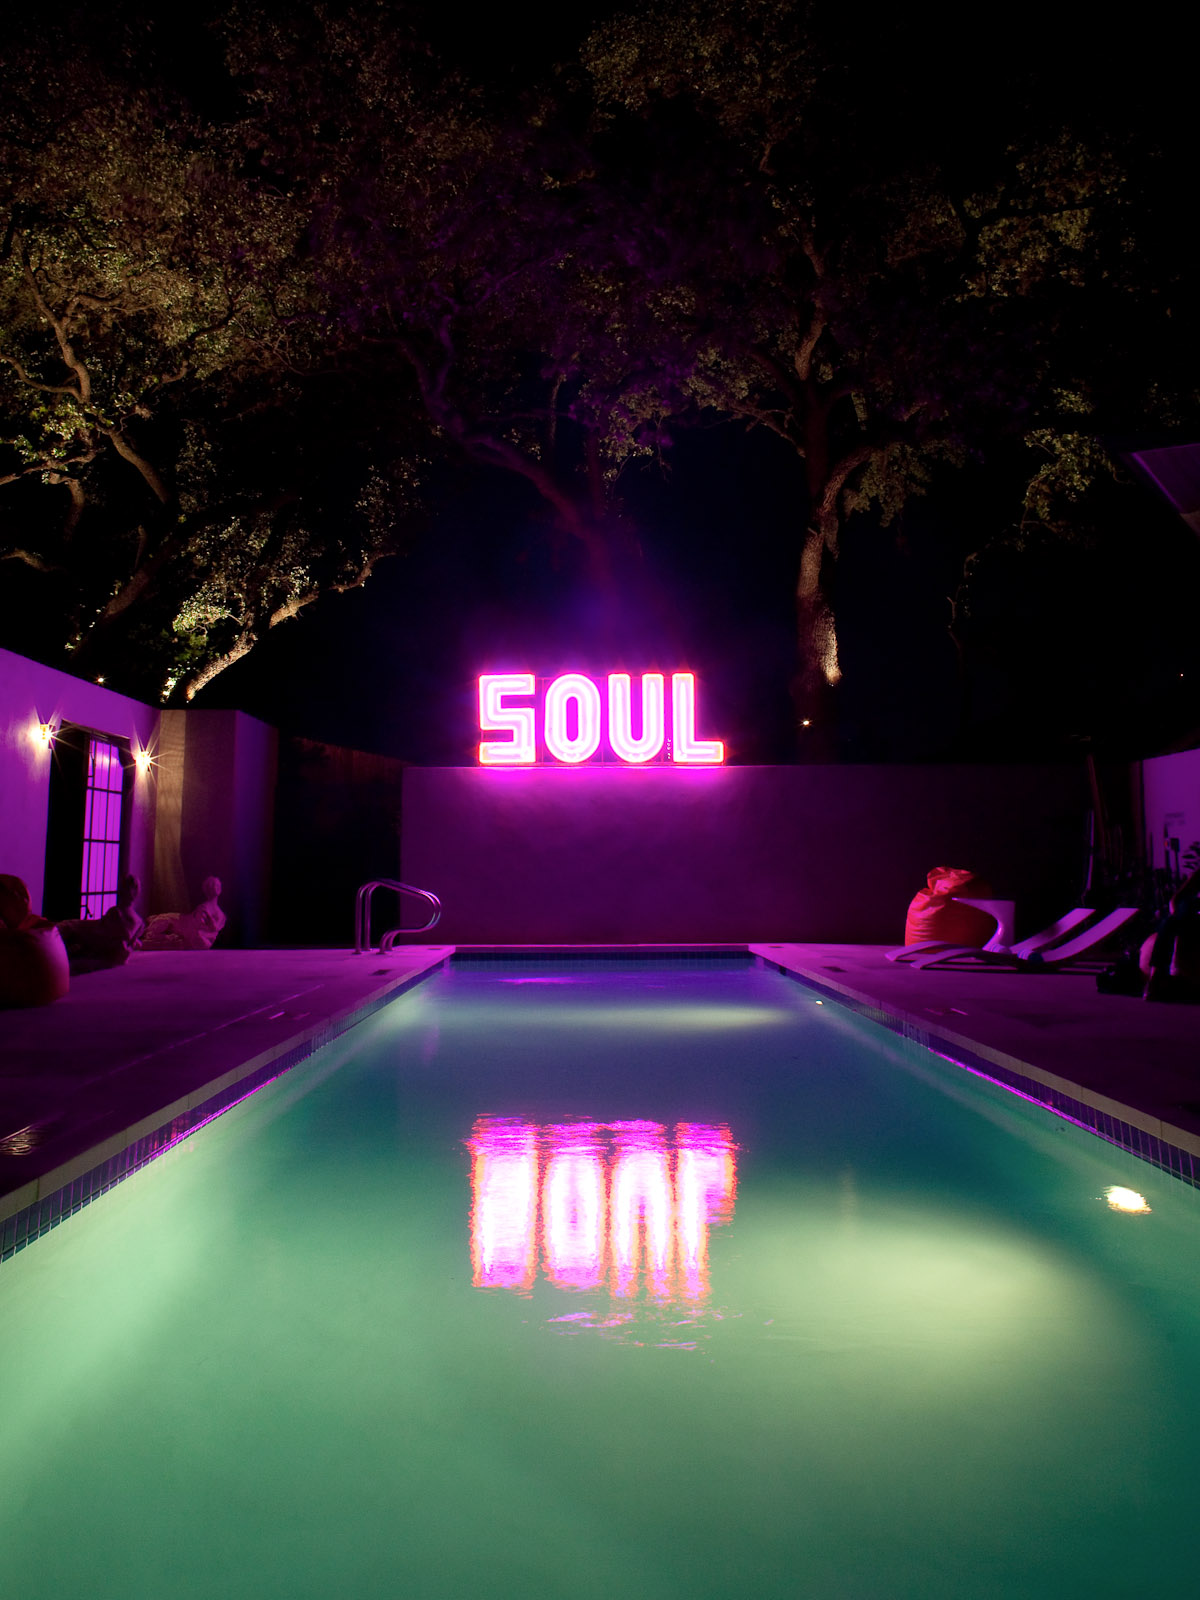 News_Travel_Lonnie Schiller_Hotel Saint Cecilia_pool_neon sign